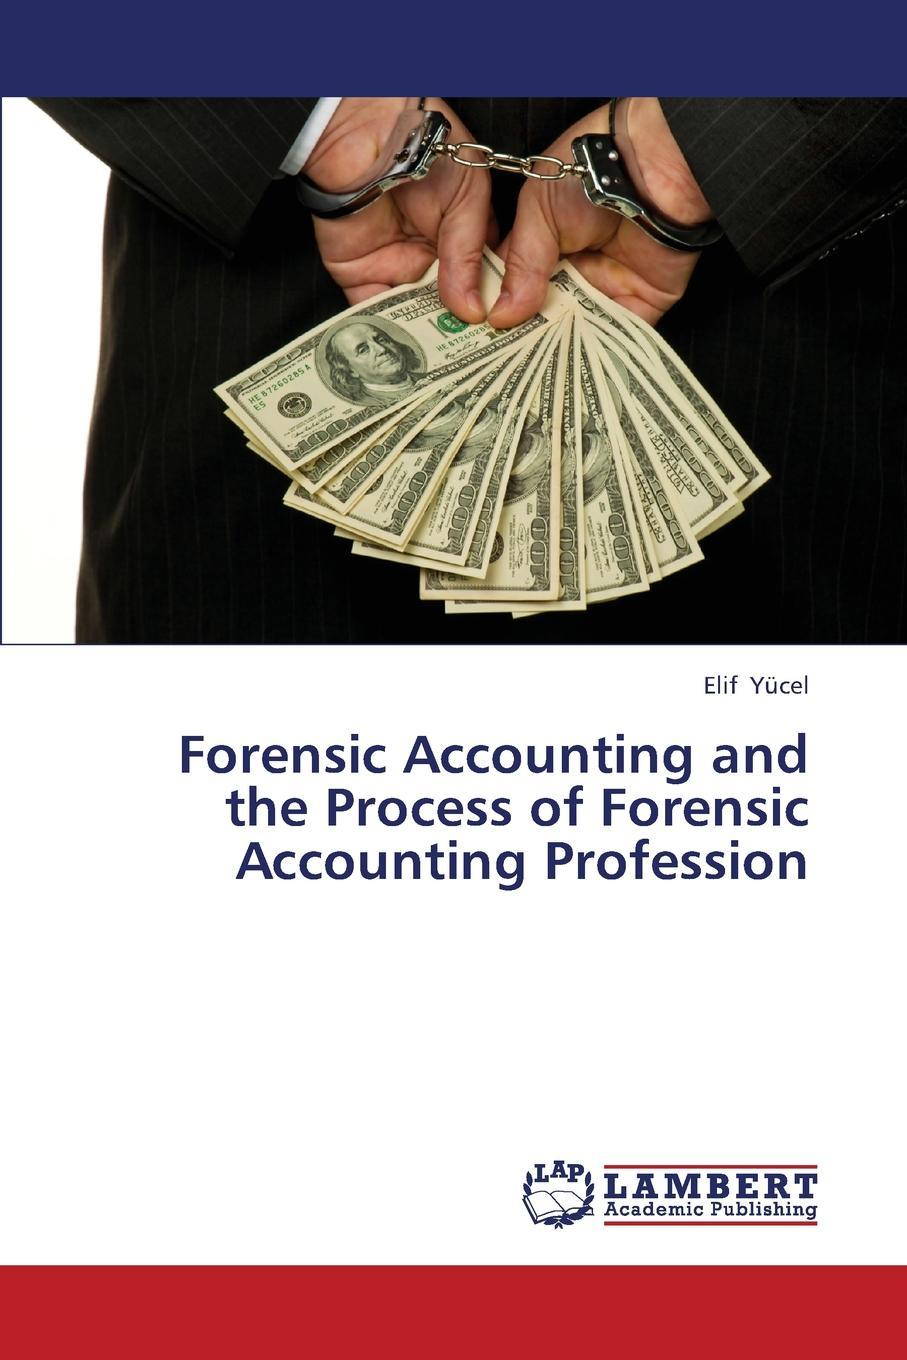 Yucel Elif Forensic Accounting and the Process of Forensic Accounting Profession zabihollah rezaee forensic accounting and financial statement fraud volume i fundamentals of forensic accounting